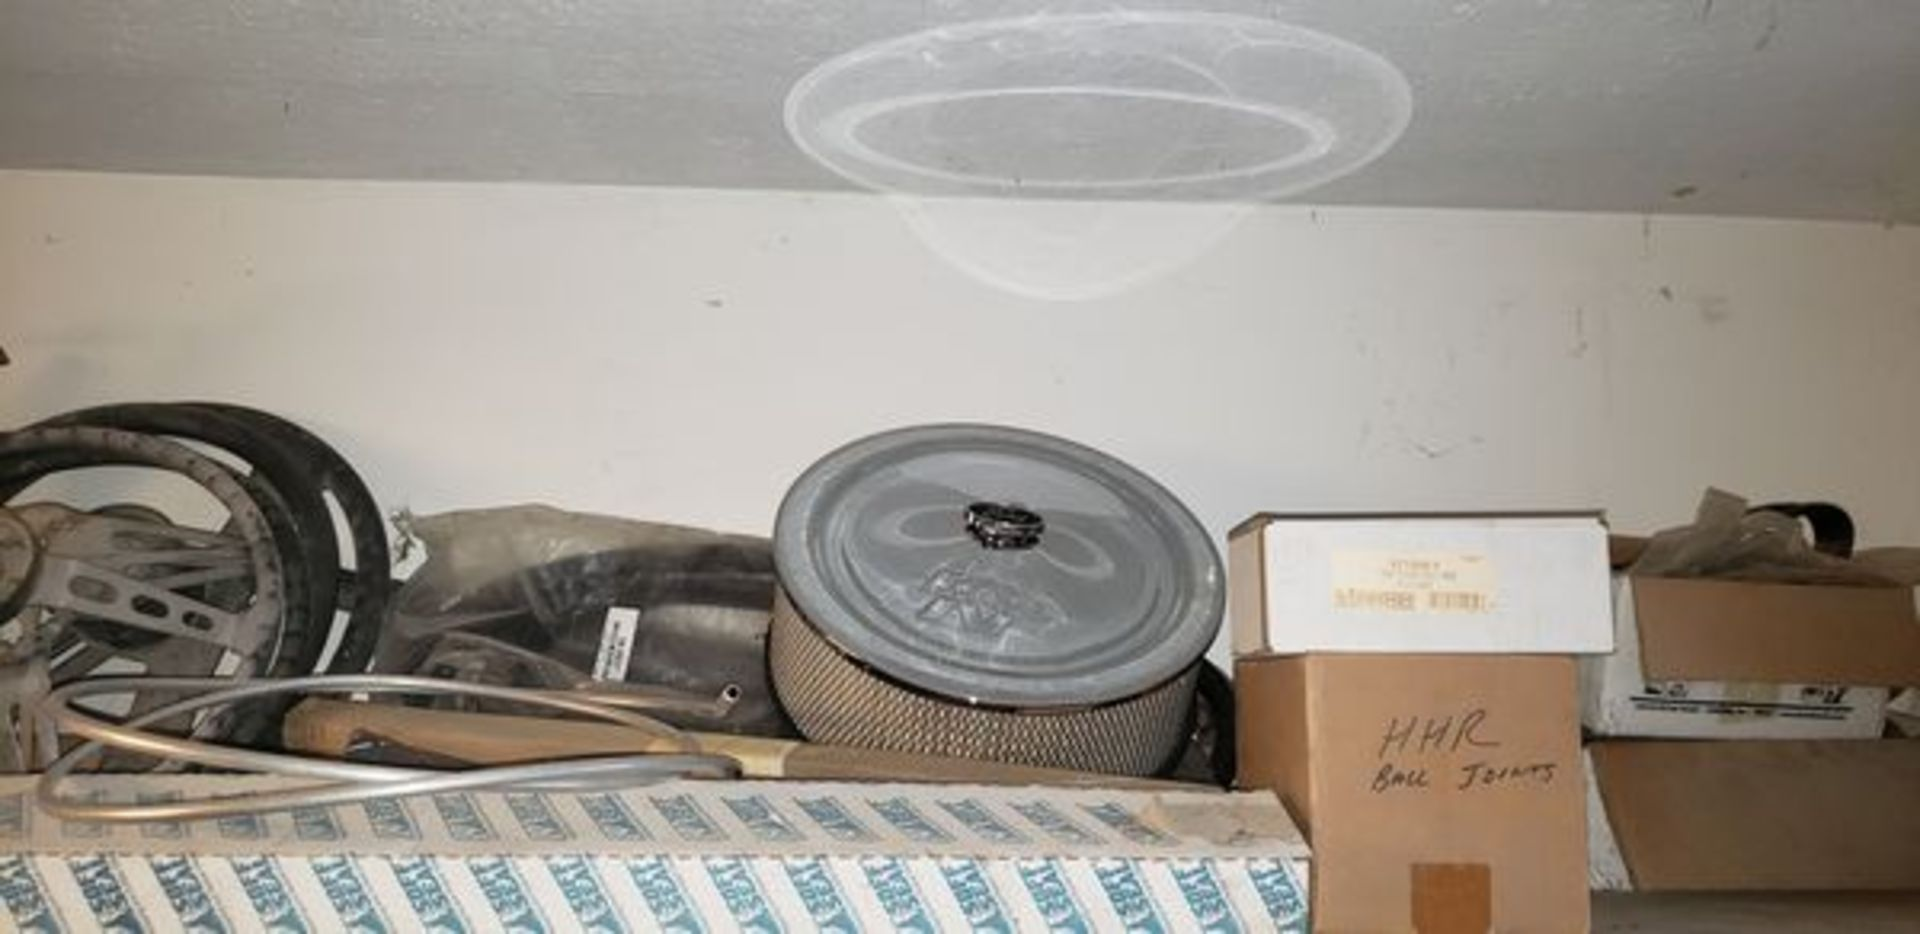 LOT OF ASSORTED CAR PARTS ON 3 SHELVES AND FLOOR - Image 3 of 12